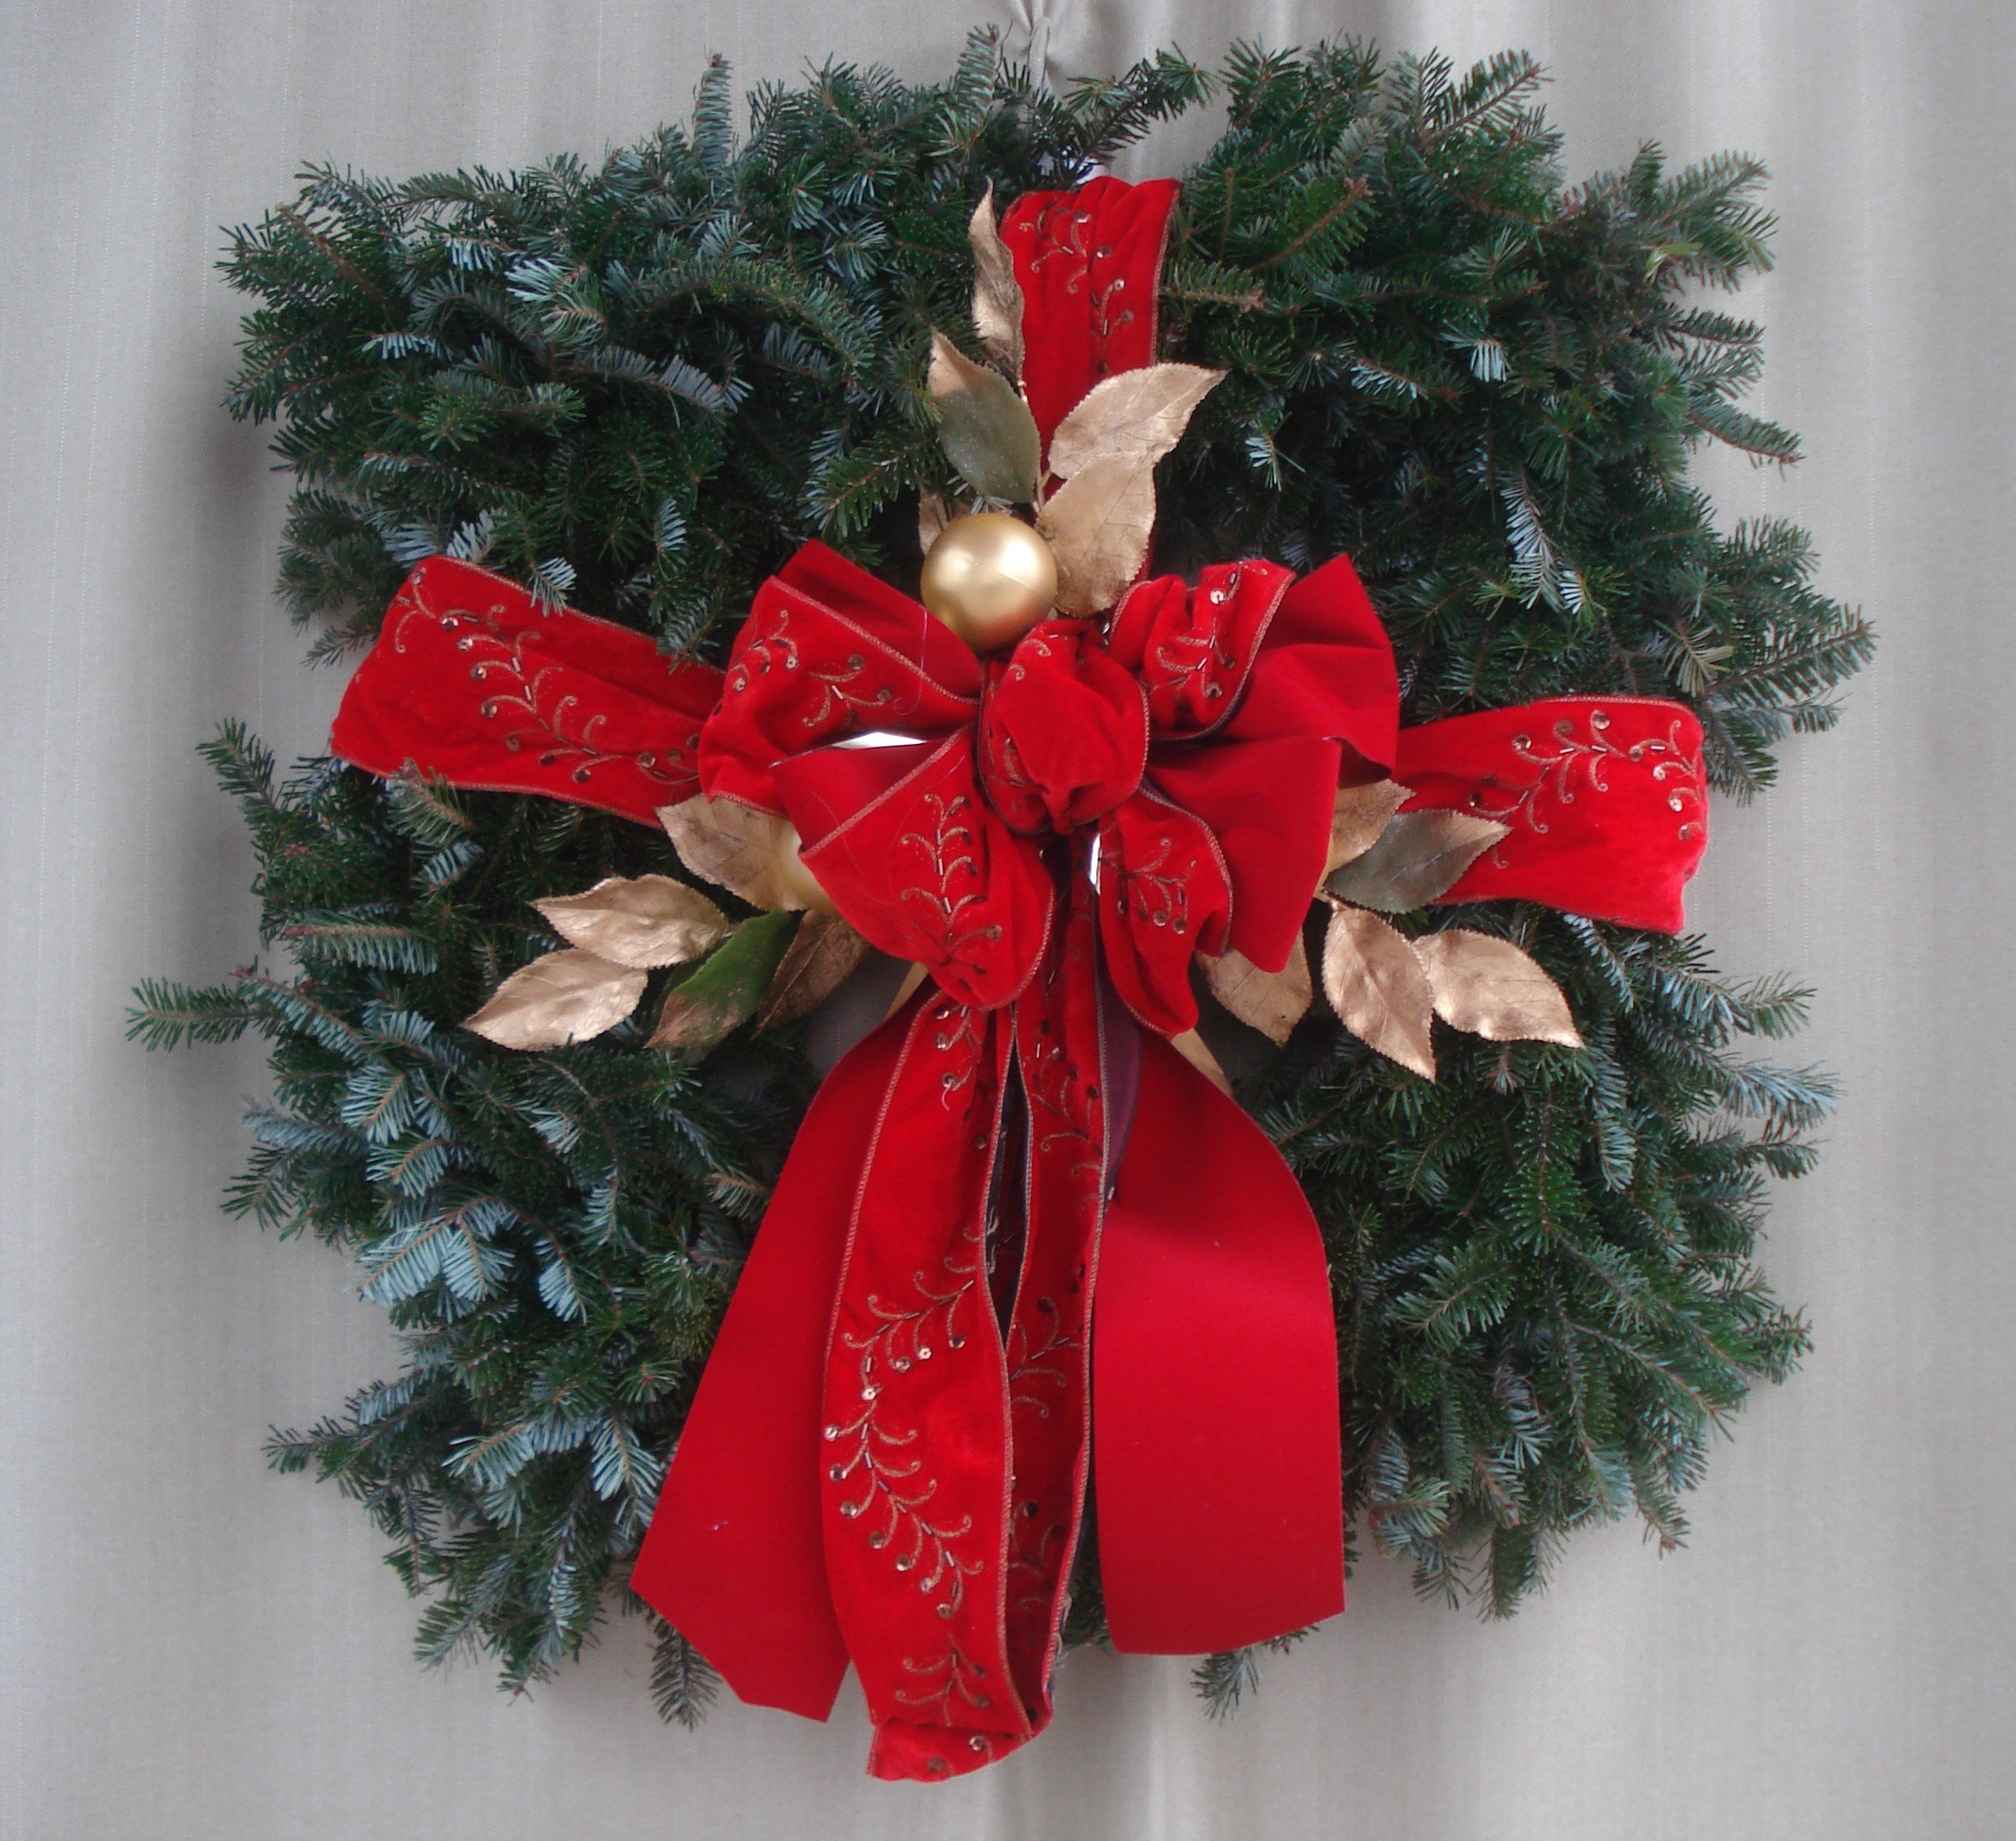 S- Square wreath wrapped as a present.jpg